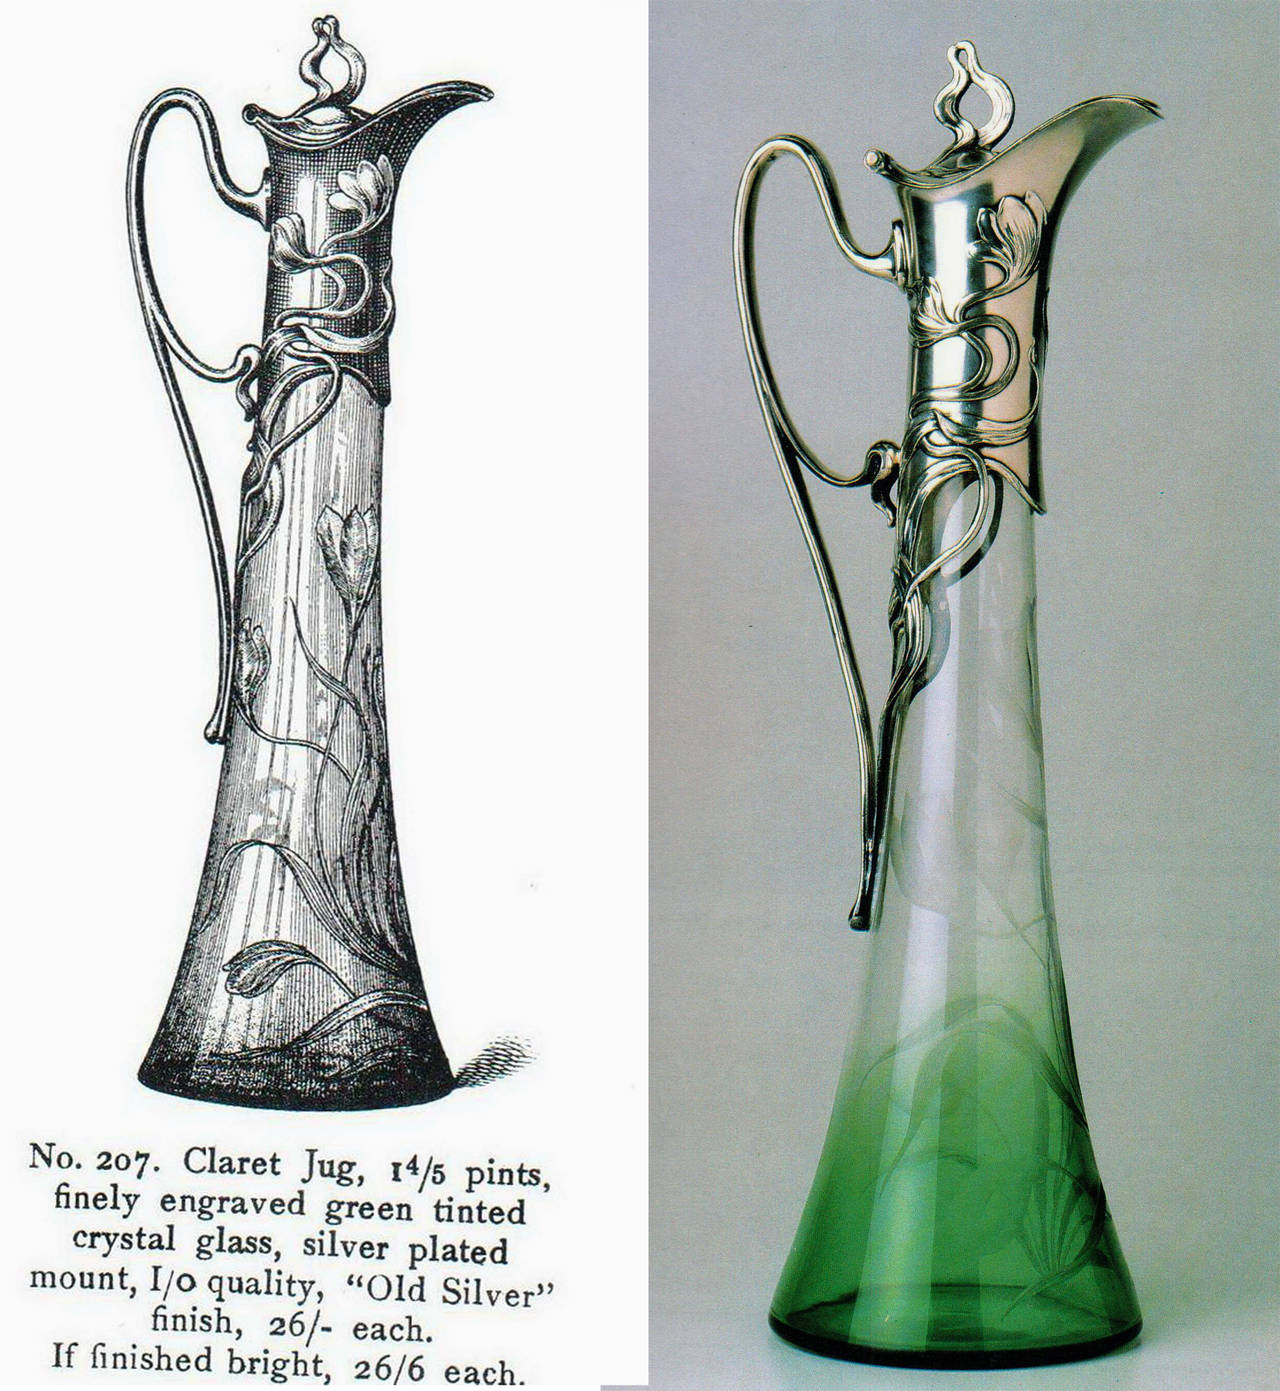 WMF ART NOUVEAU STUNNING CLARET JUG    MADE CIRCA 1900 / 05